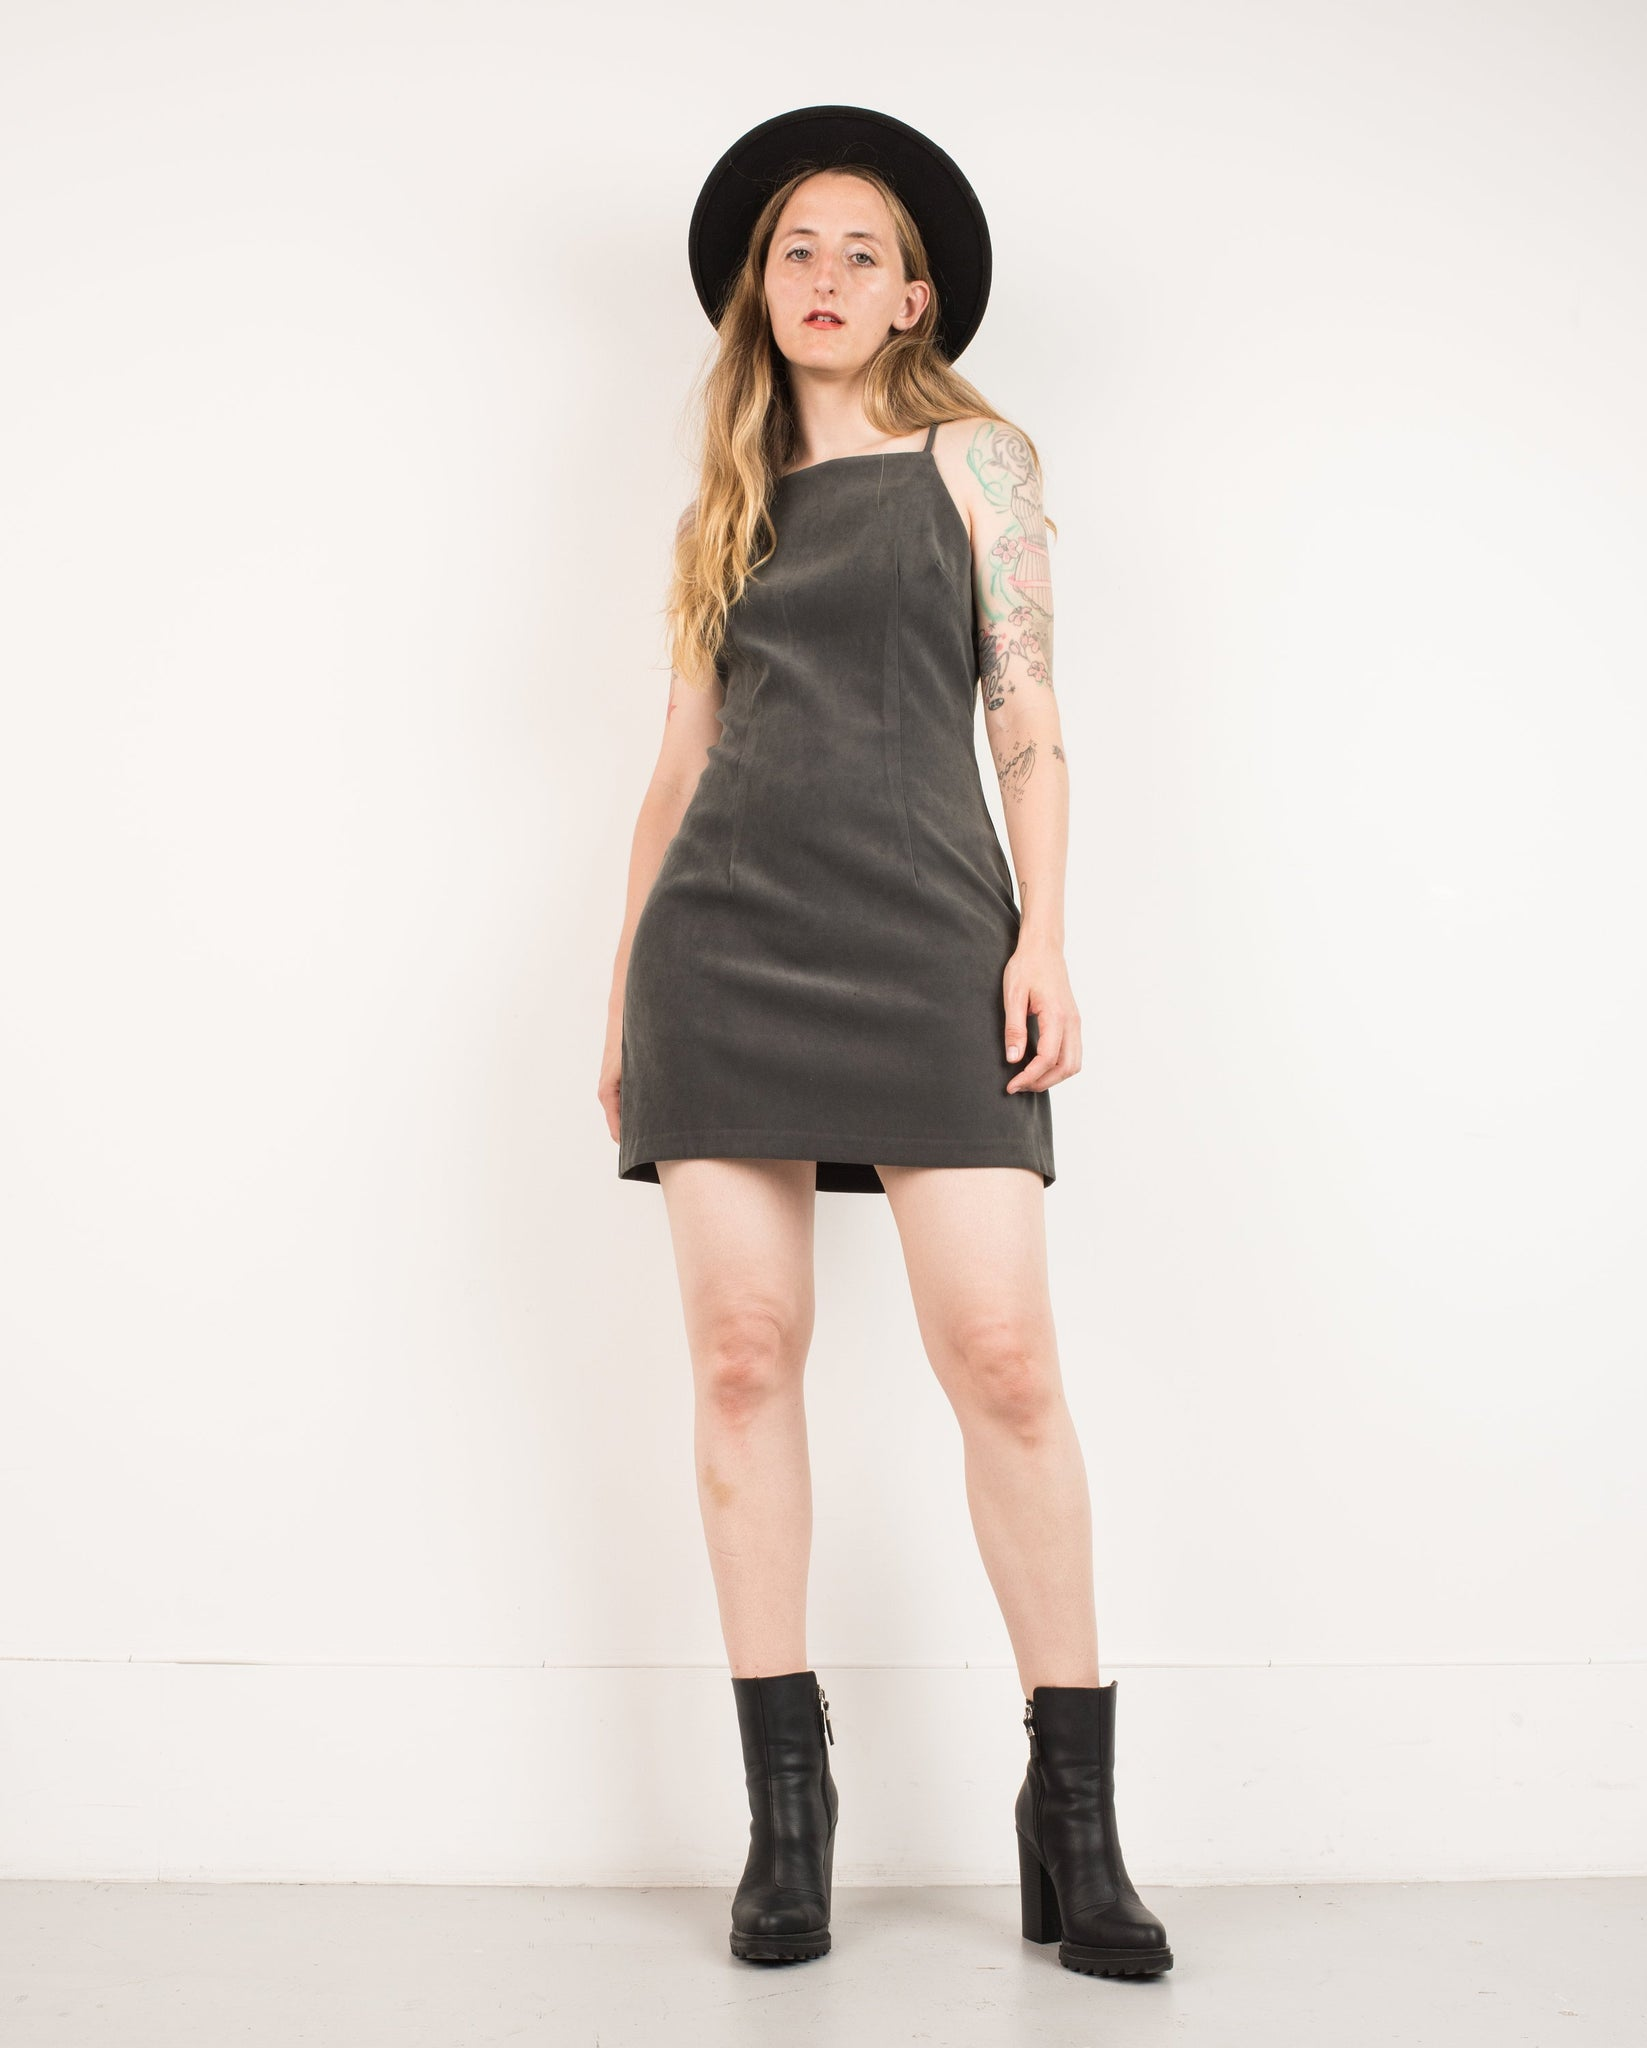 Vintage Charcoal Spaghetti Strap Dress / S - Closed Caption